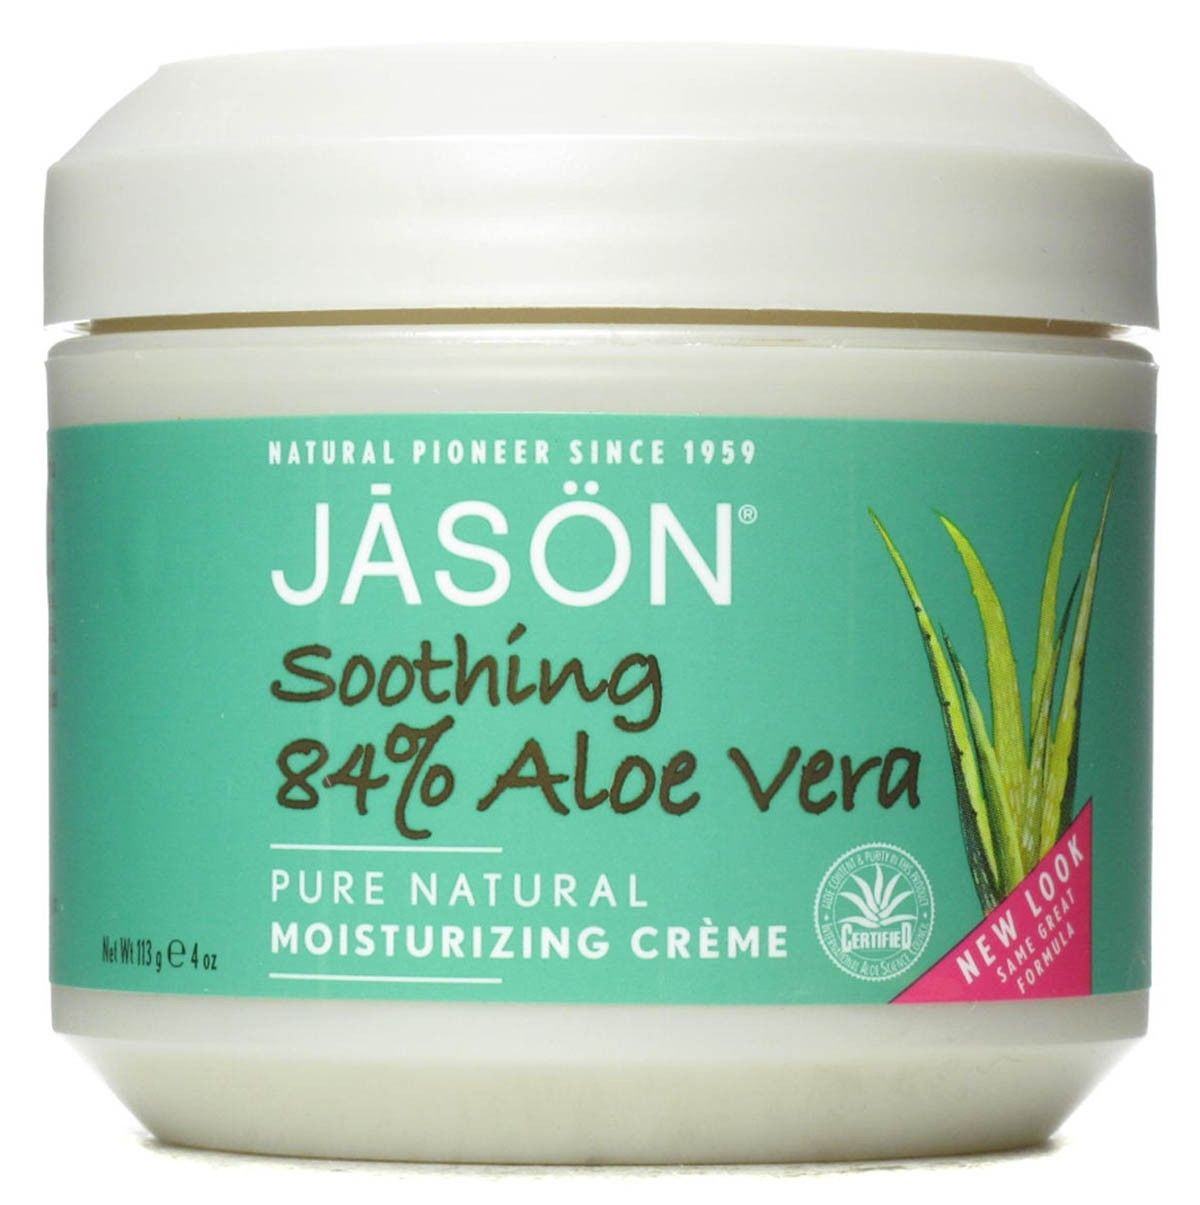 jason 84 aloe vera pure natural moisture cream ebay. Black Bedroom Furniture Sets. Home Design Ideas